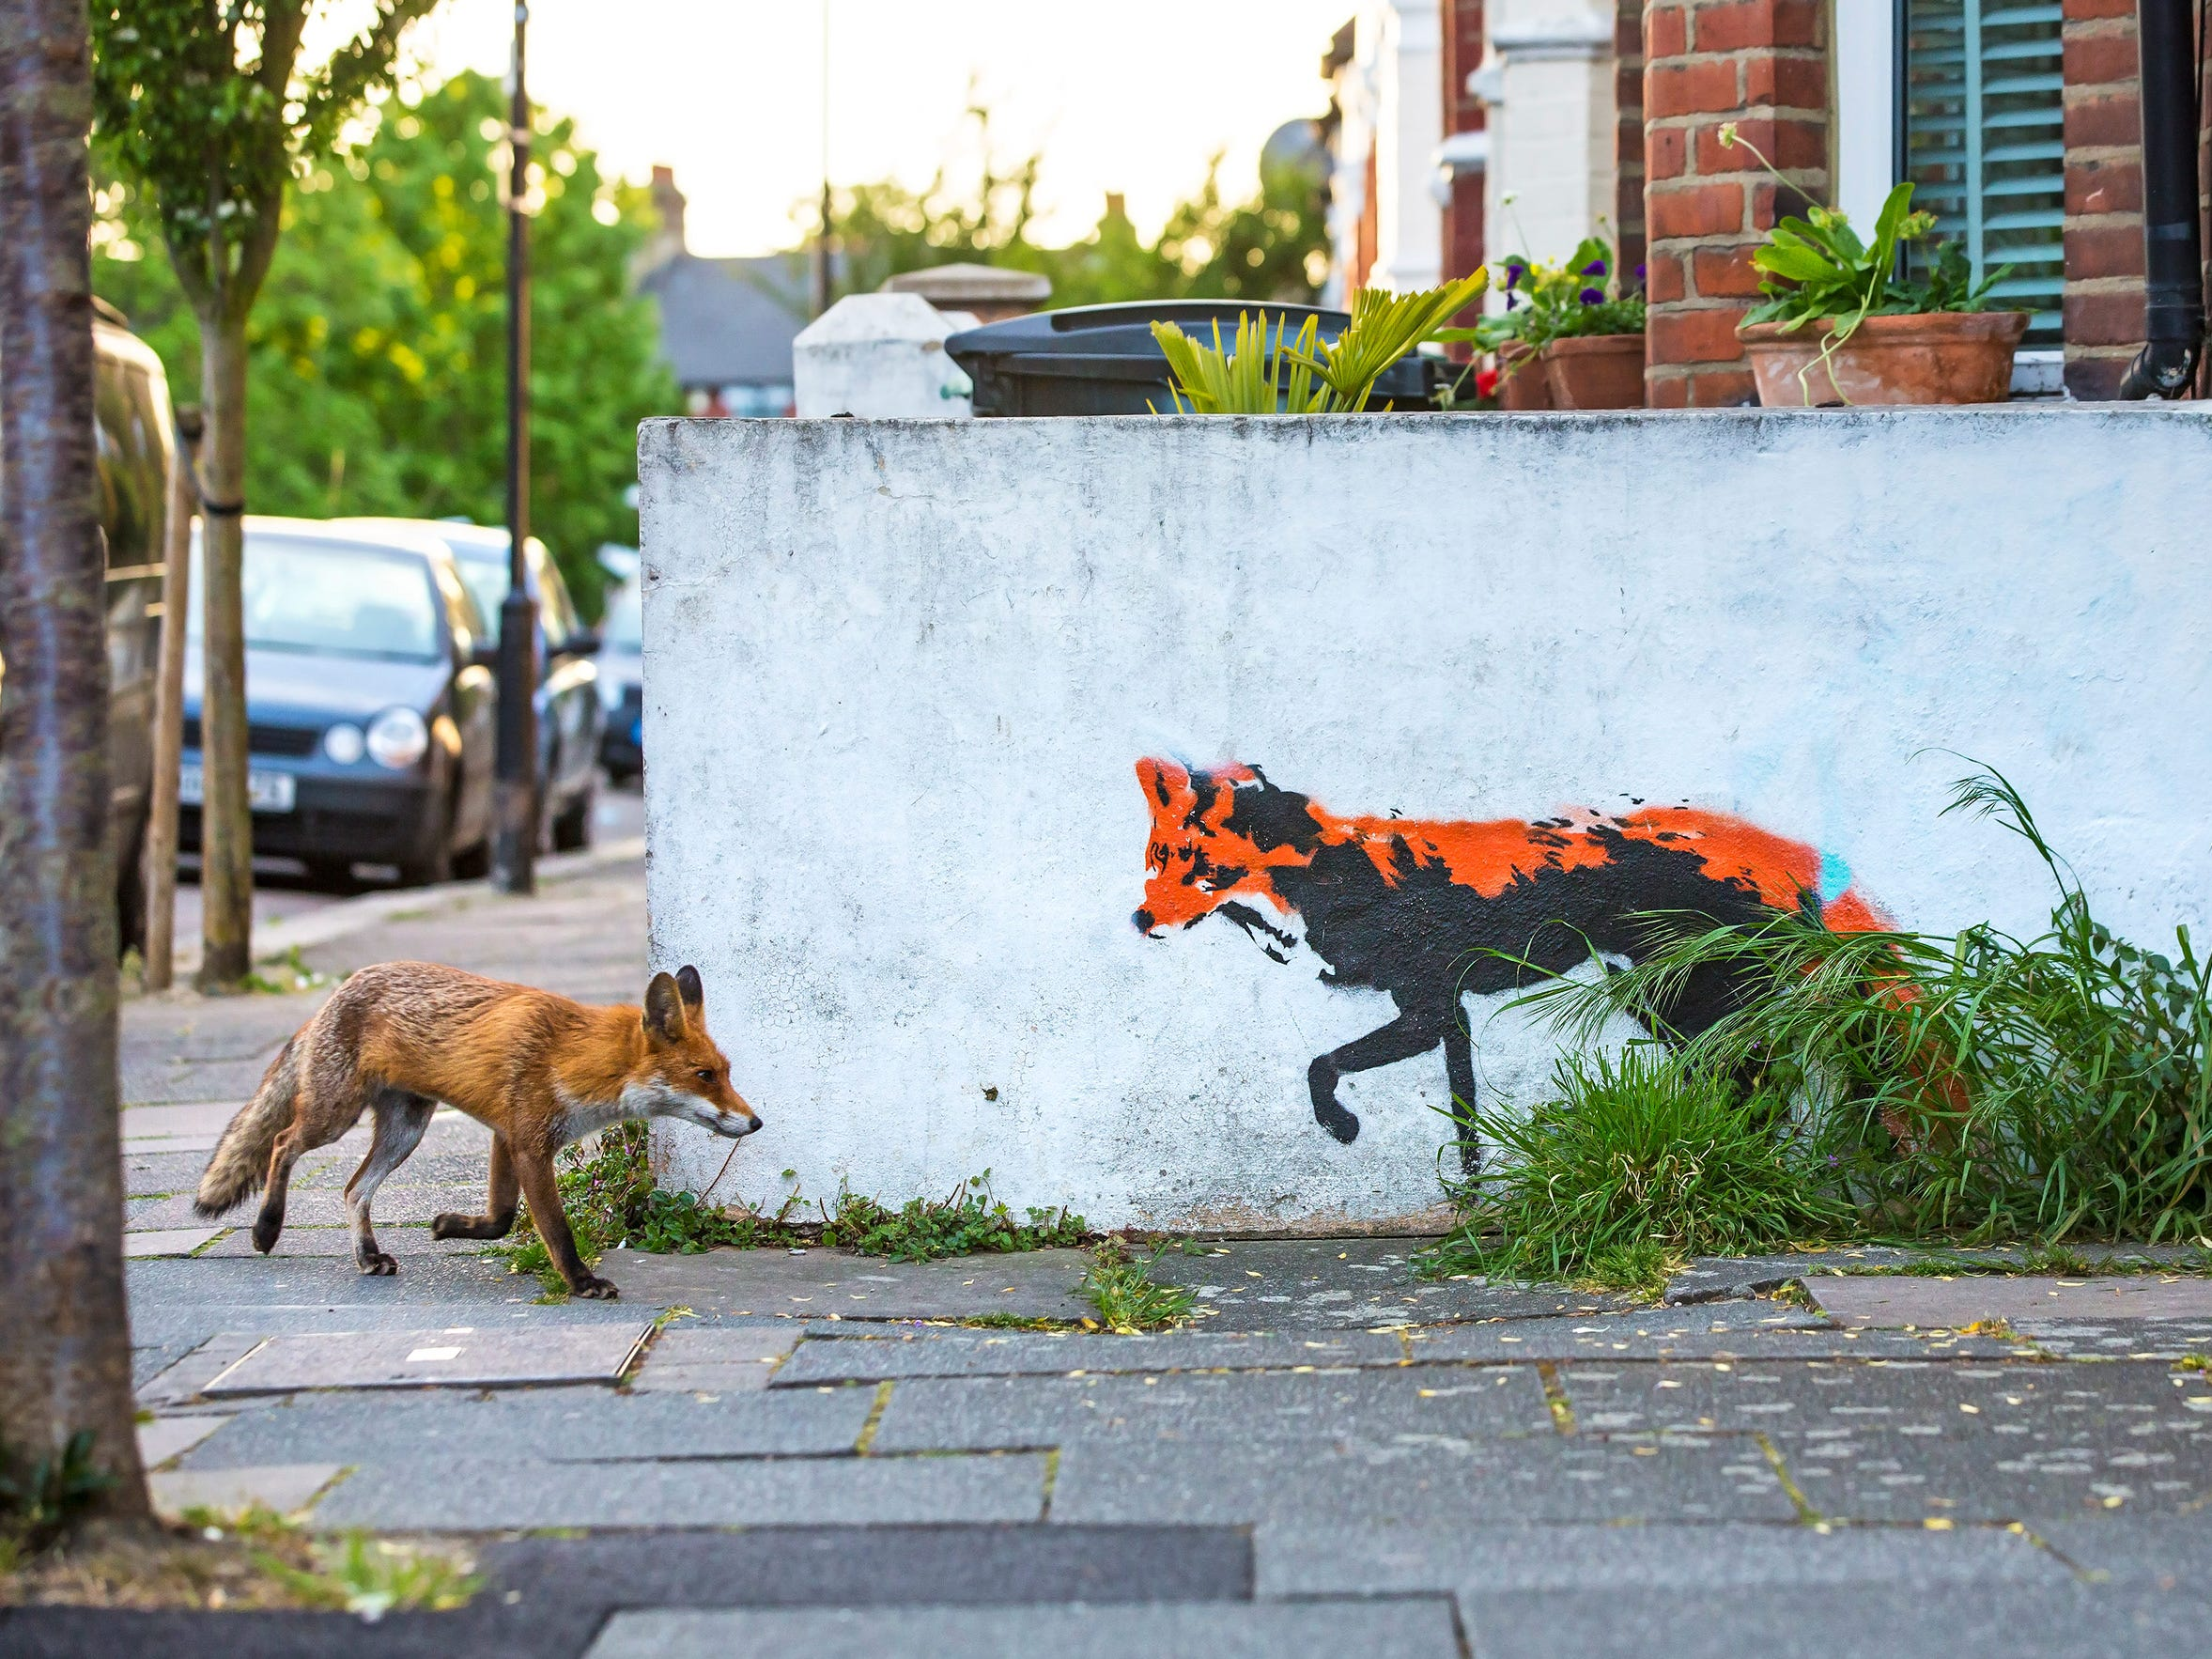 """Matthew Maran's photo """"Fox Meets Fox"""" was named Highly Commended by the Wildlife Photographer of the Year LUMIX People's Choice Award. Maran has been photographing foxes close to his home in north London for over a year and ever since spotting this street art had dreamt of capturing this image. After countless hours and many failed attempts his persistence paid off."""